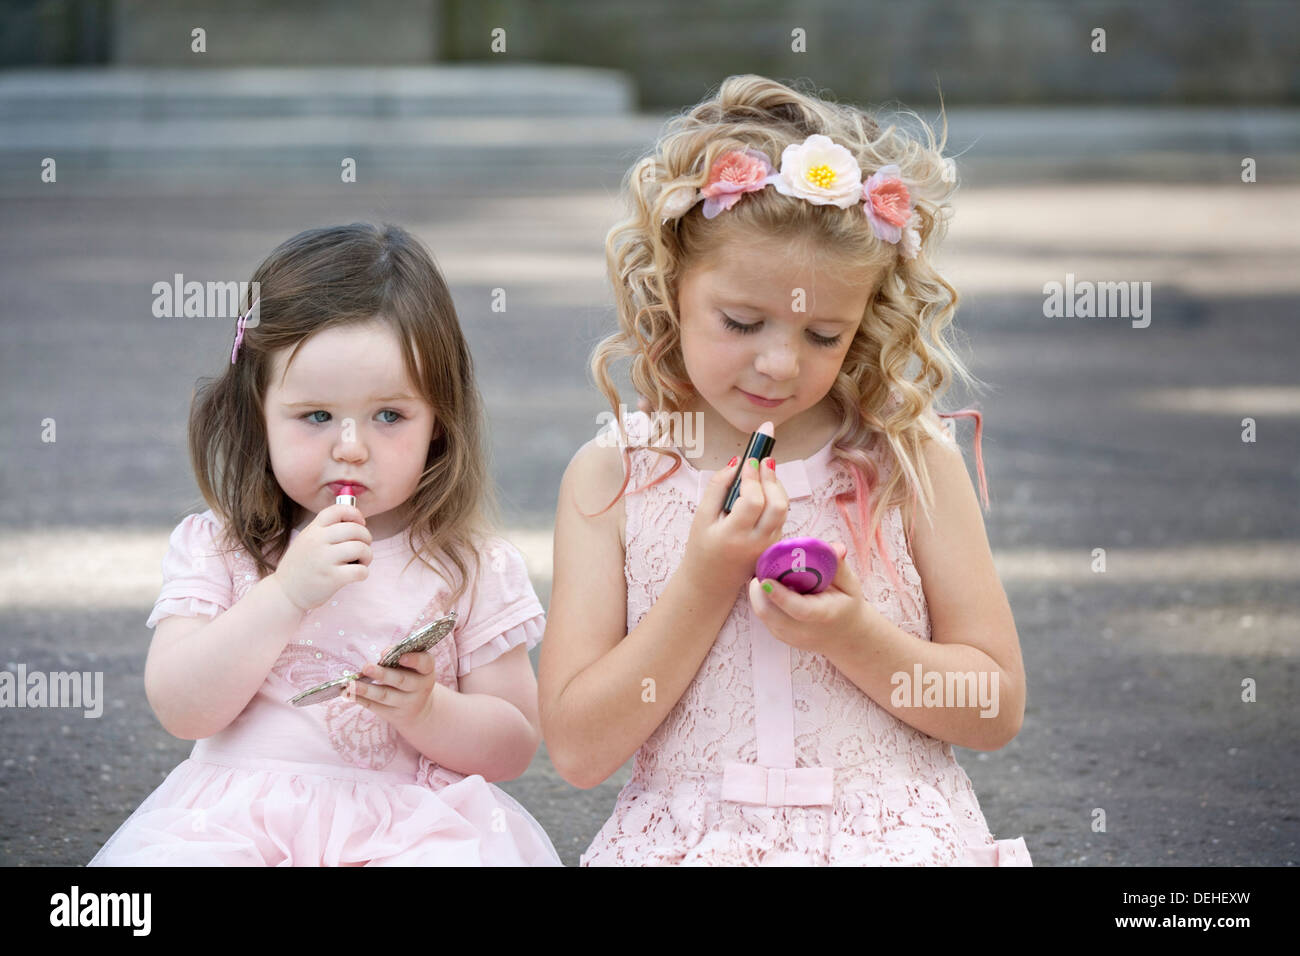 Pretty Preteen Girls Stockfotos & Pretty Preteen Girls Bilder - Alamy